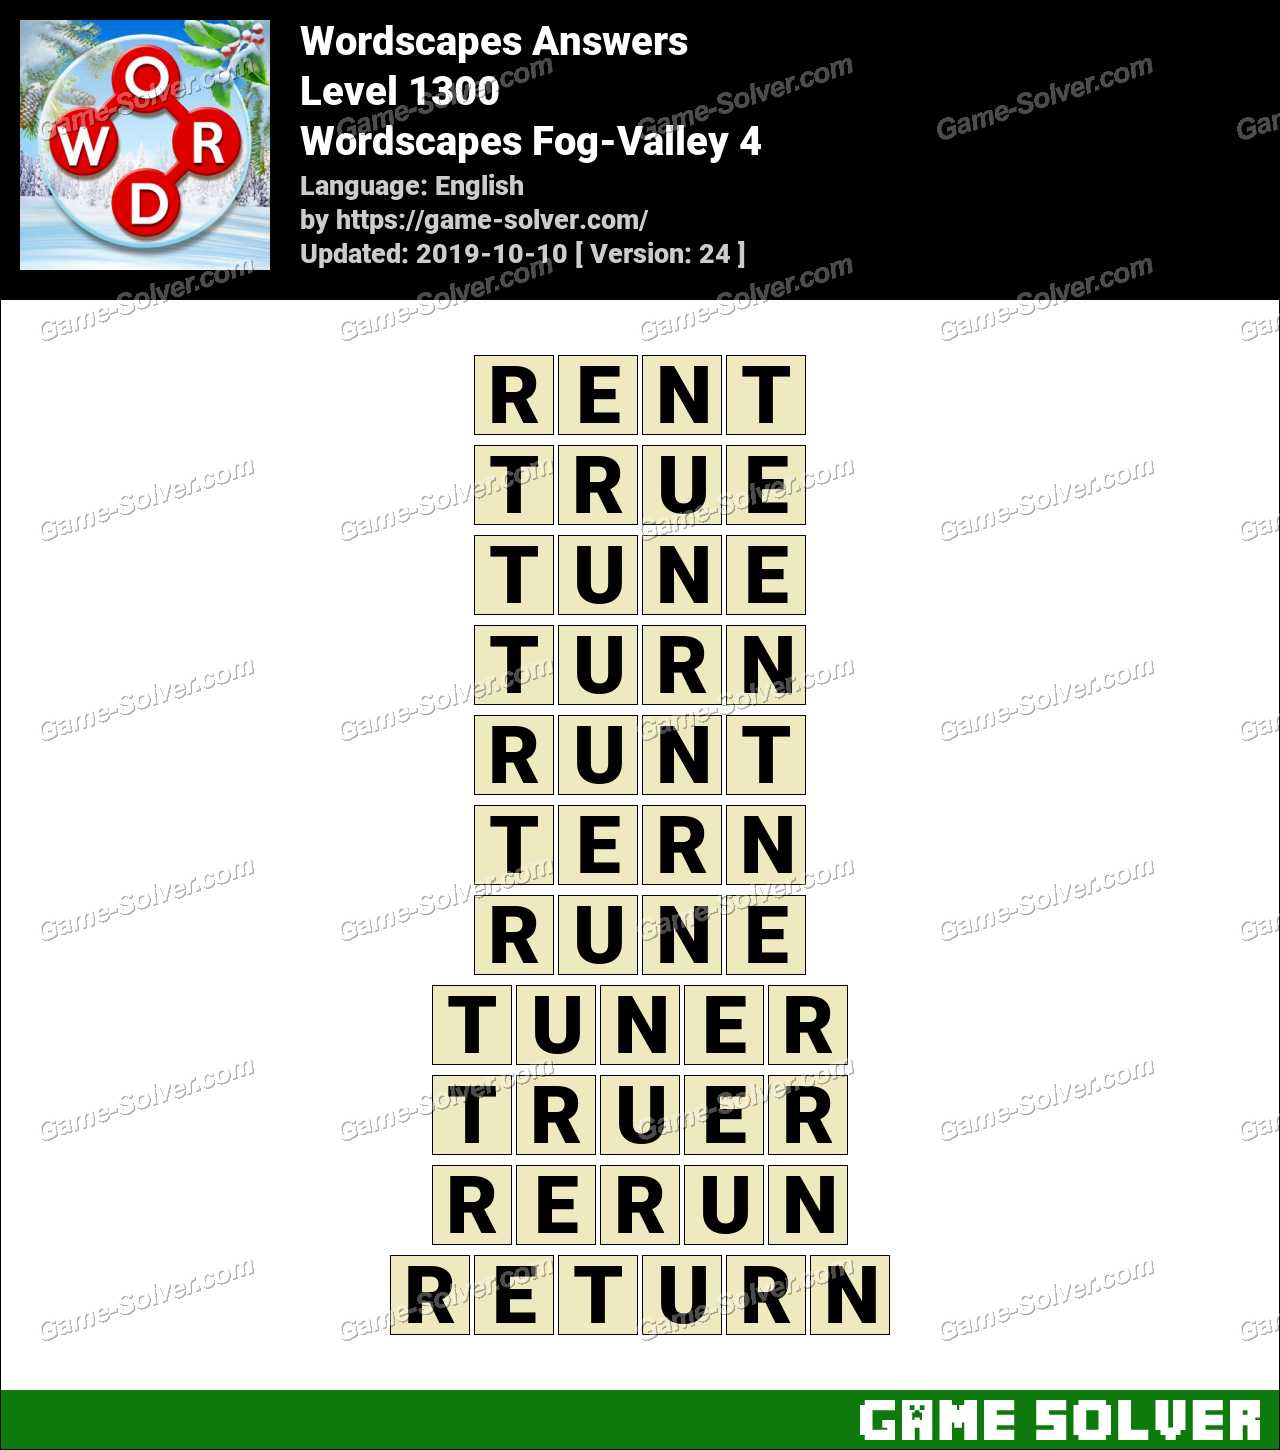 Wordscapes Fog-Valley 4 Answers